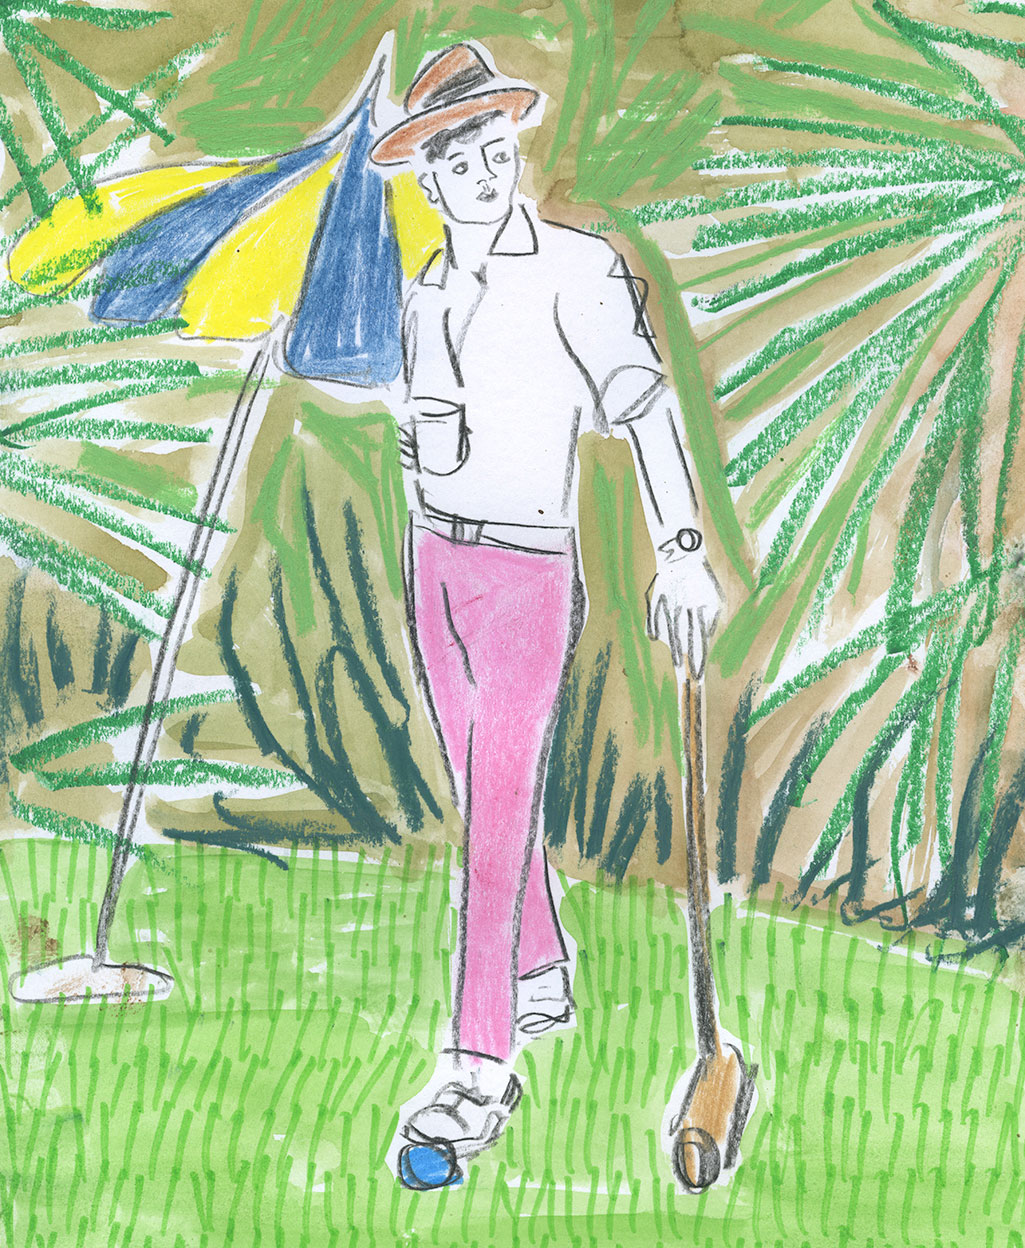 Croquet illustration